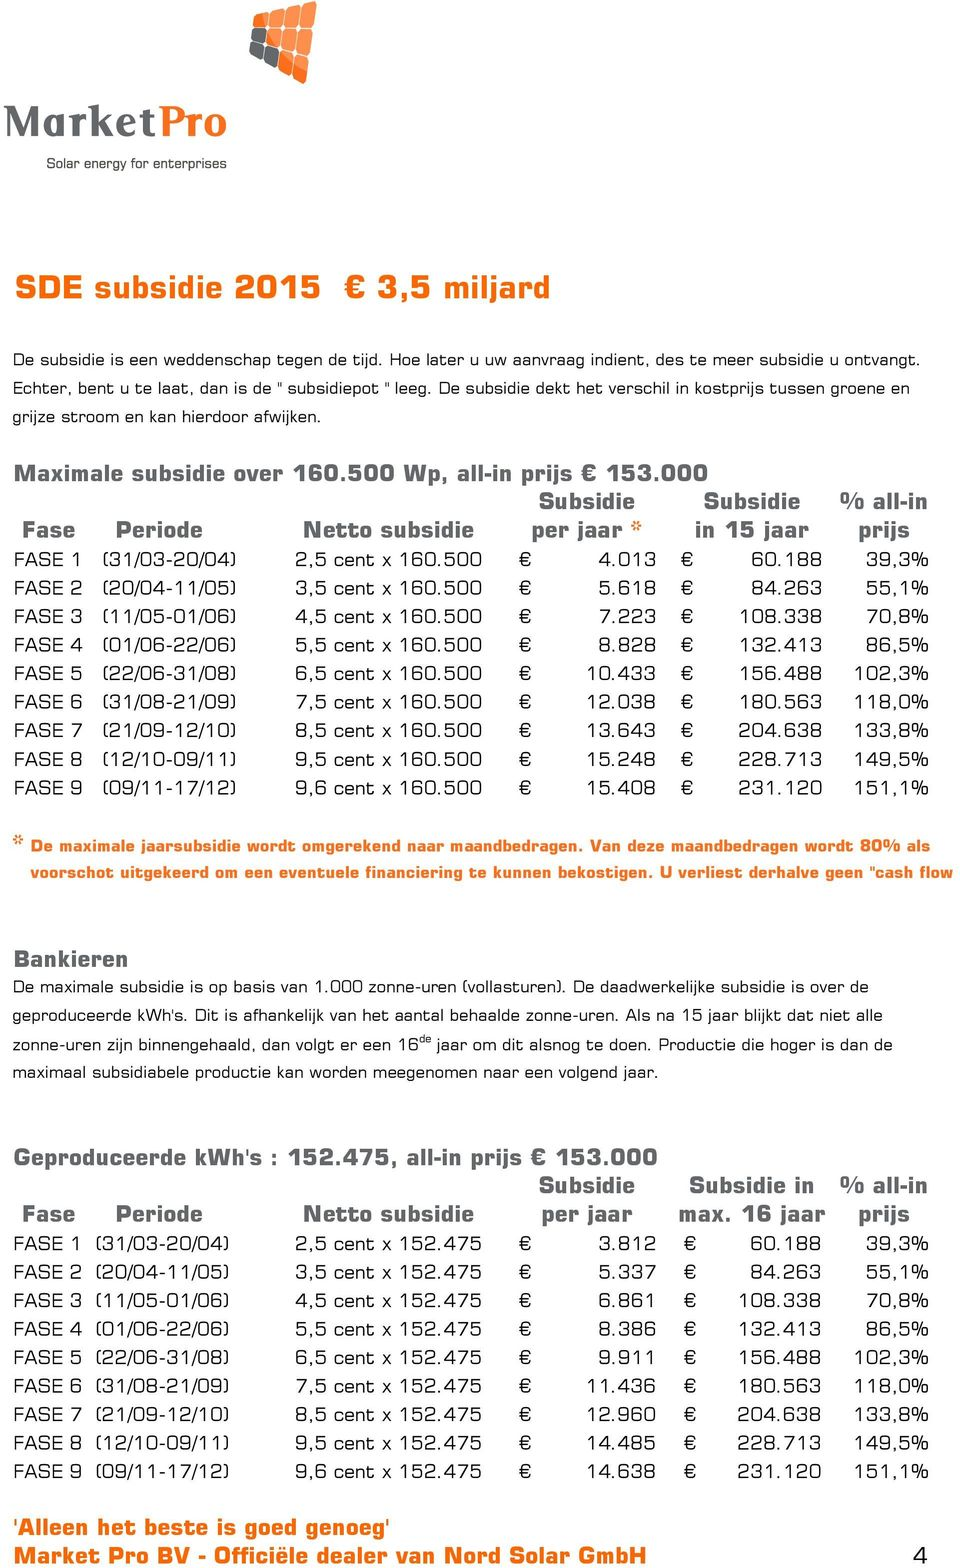 000 Subsidie Subsidie % all-in Fase Periode Netto subsidie per jaar * in 15 jaar prijs FASE 1 (31/03-20/04) 2,5 cent x 160.500 4.013 60.188 39,3% FASE 2 (20/04-11/05) 3,5 cent x 160.500 5.618 84.